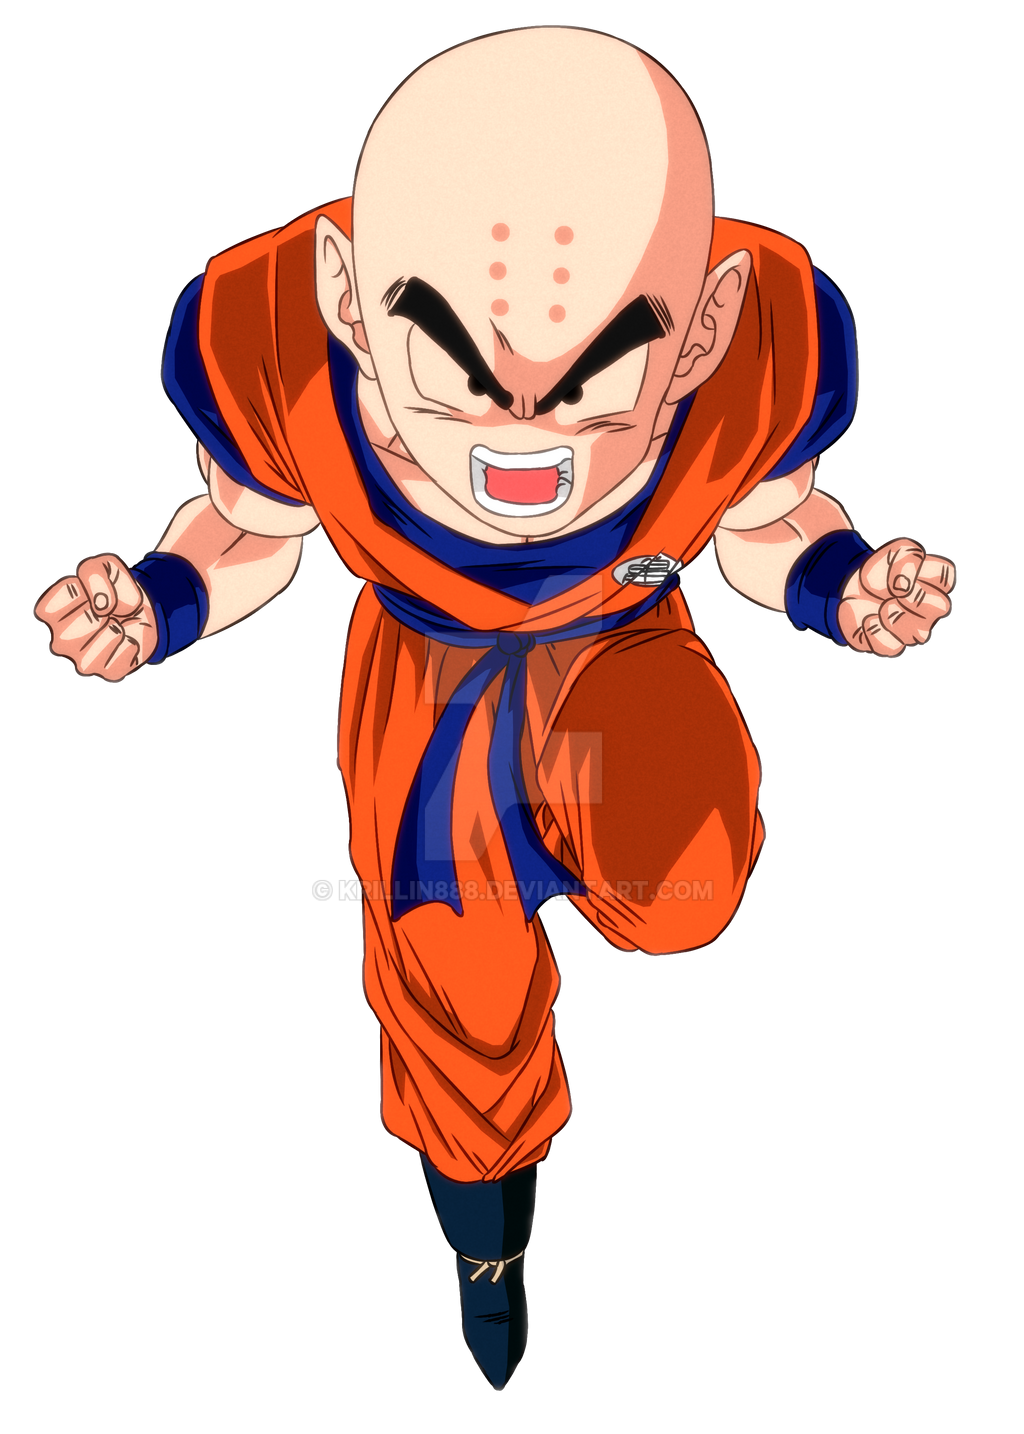 Krillin Dragonball Z Cell Saga By Krillin888 On Deviantart